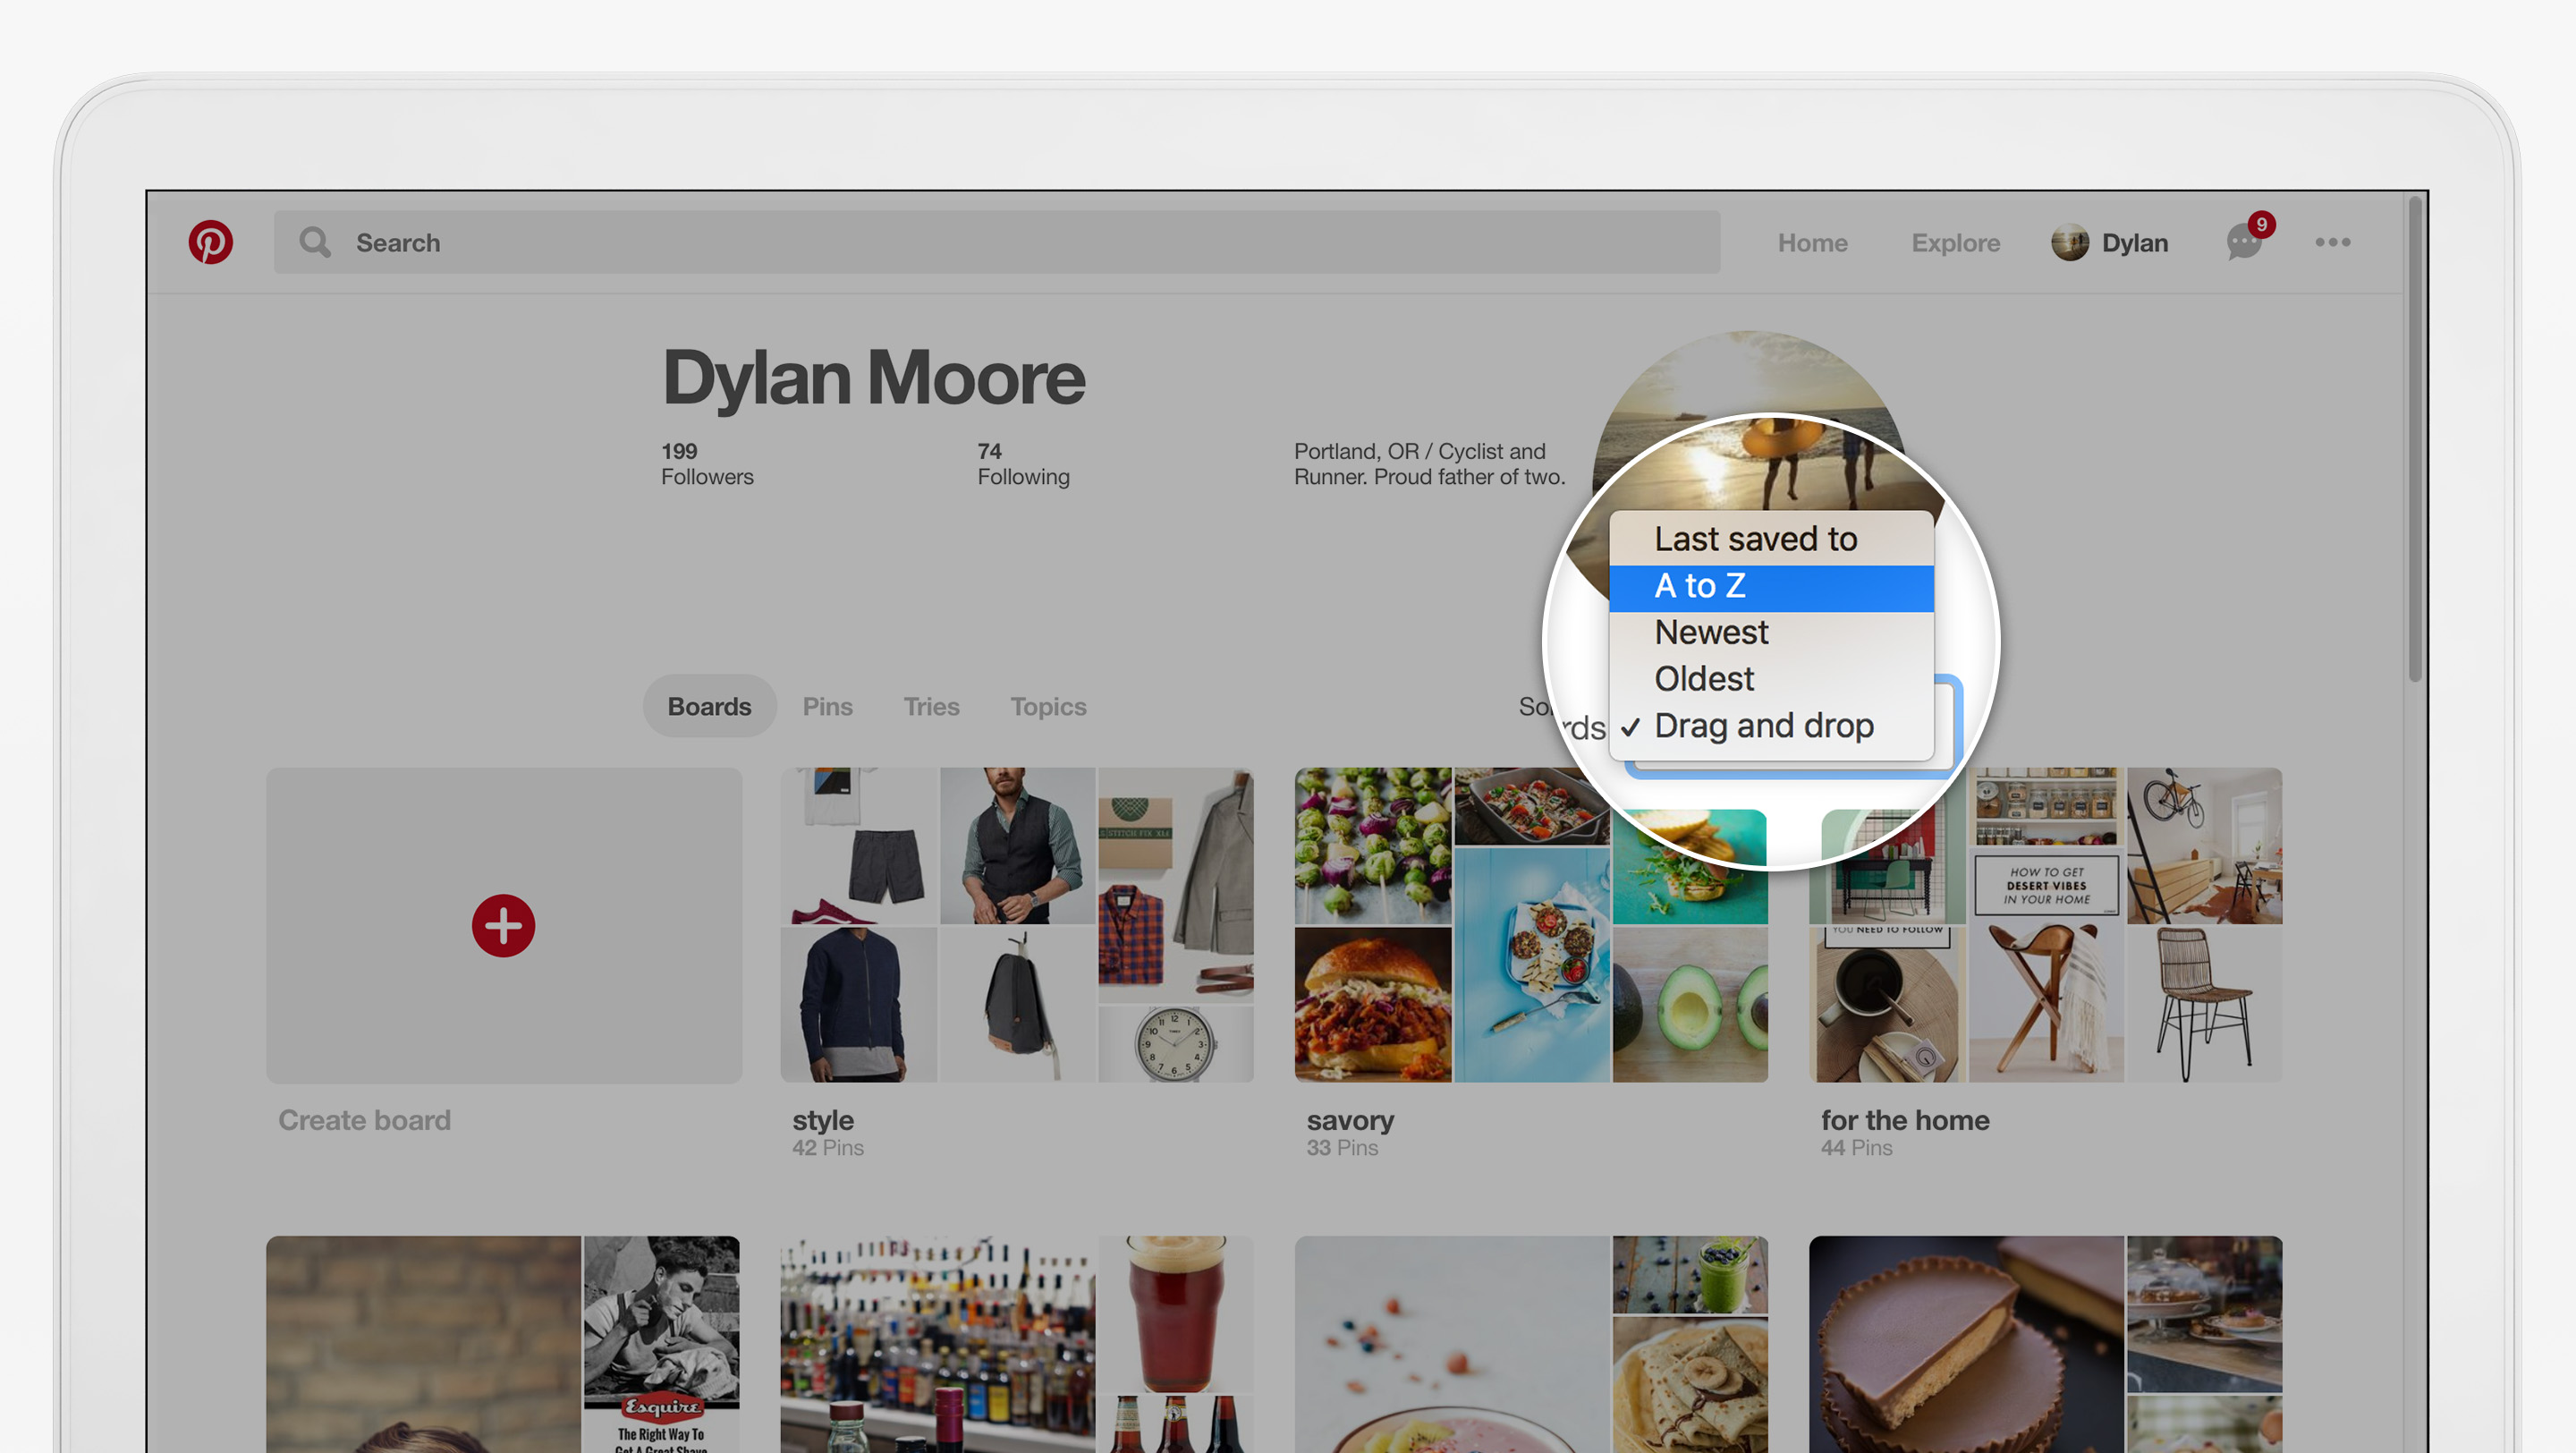 Pinterest Has Added a Range of New Custom Presentation Options for Pin Content | Social Media Today